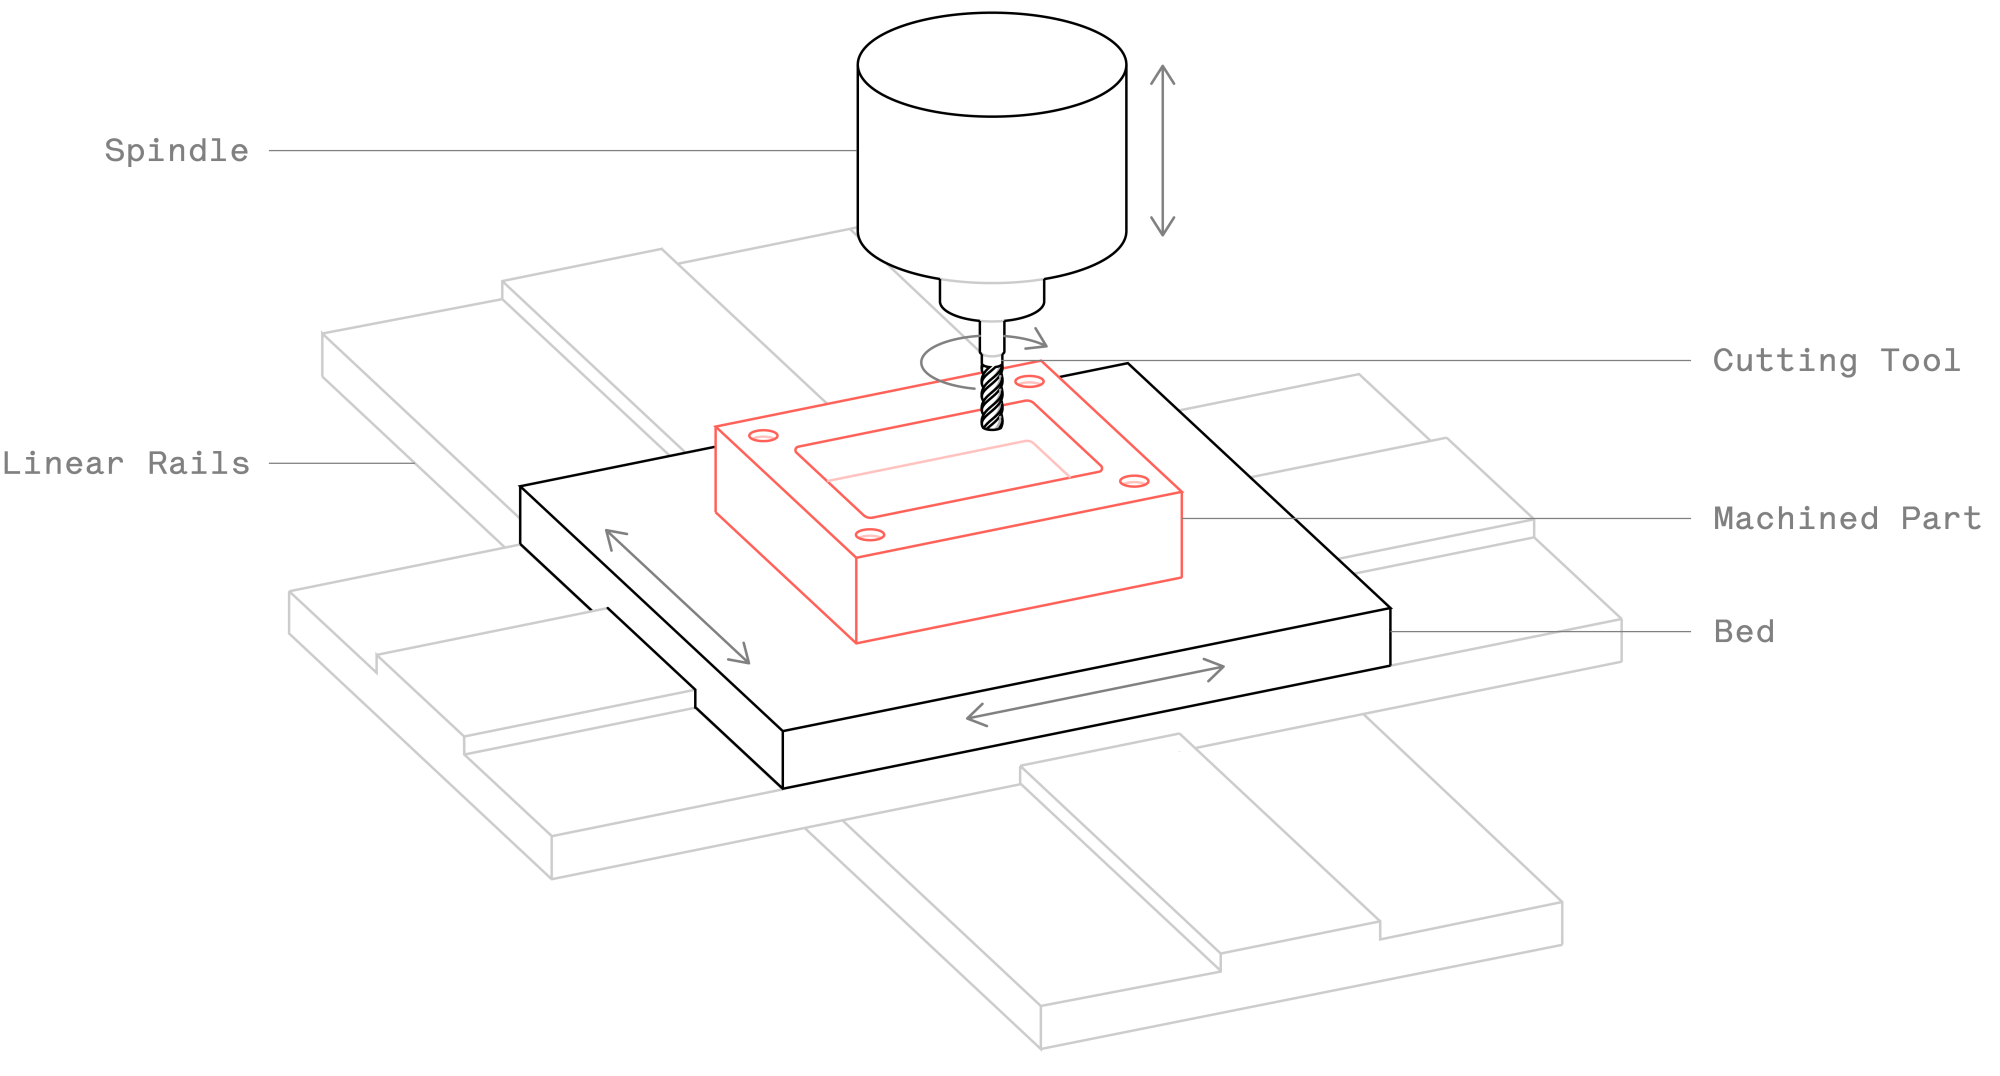 hight resolution of schematic of a cnc machining